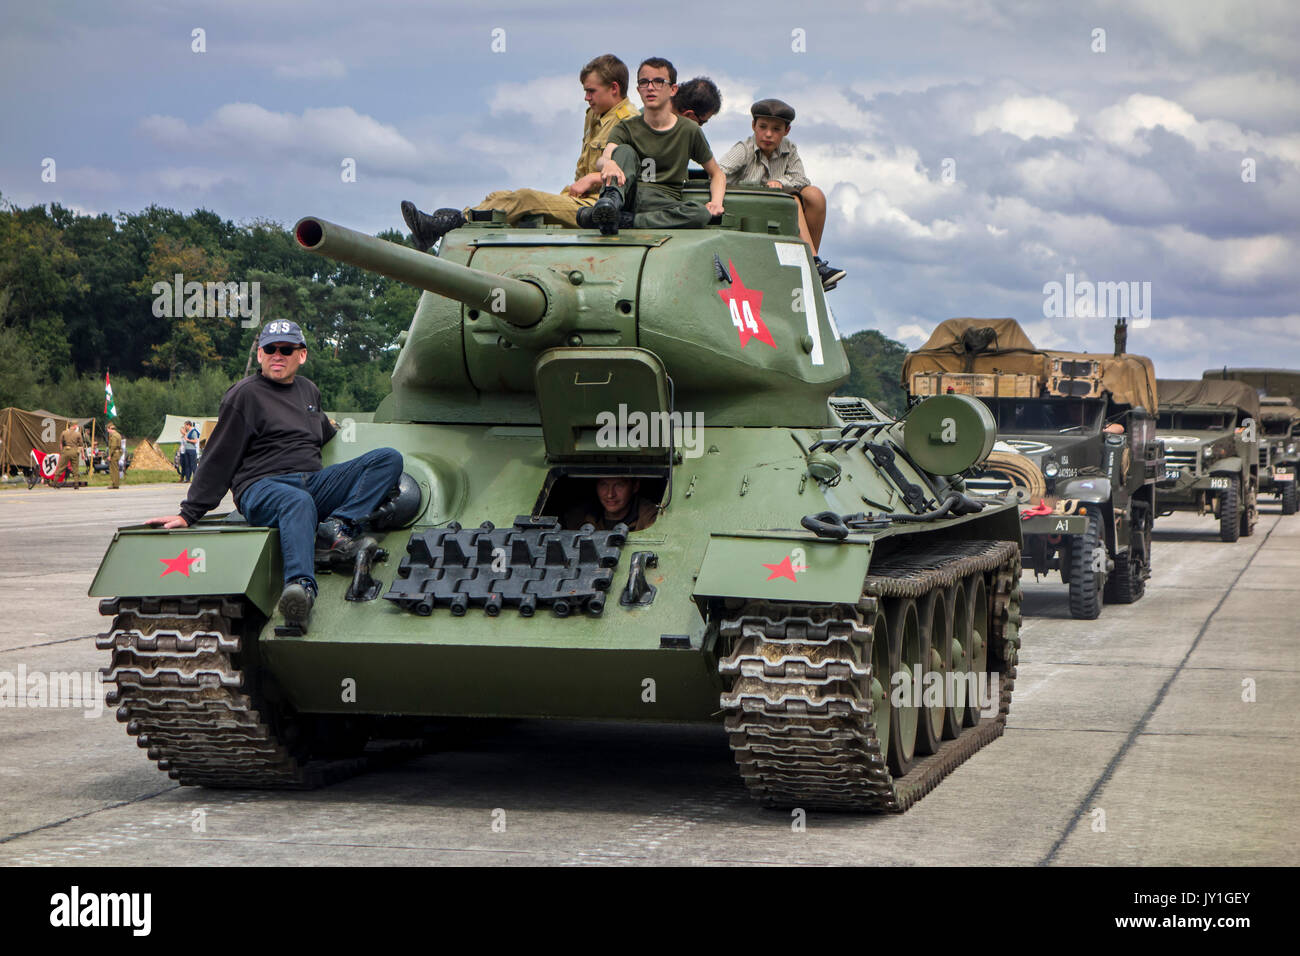 T-34 Soviet medium tank during WW2 military vehicles parade at Wold War Two militaria fair - Stock Image